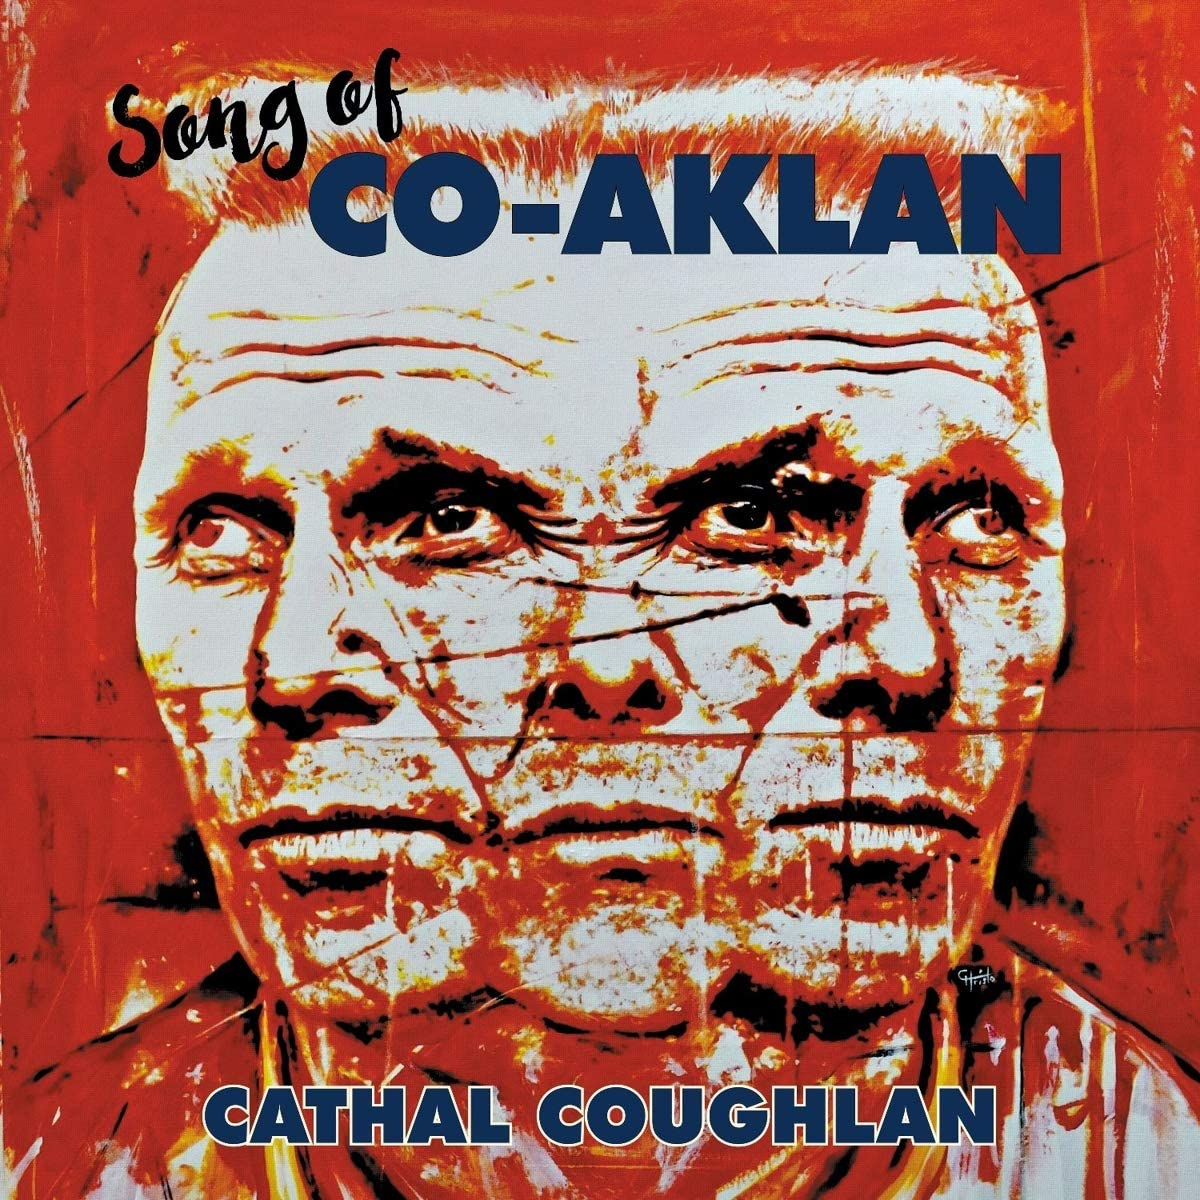 News – Cathal Coughlan – Song of Co-Aklan